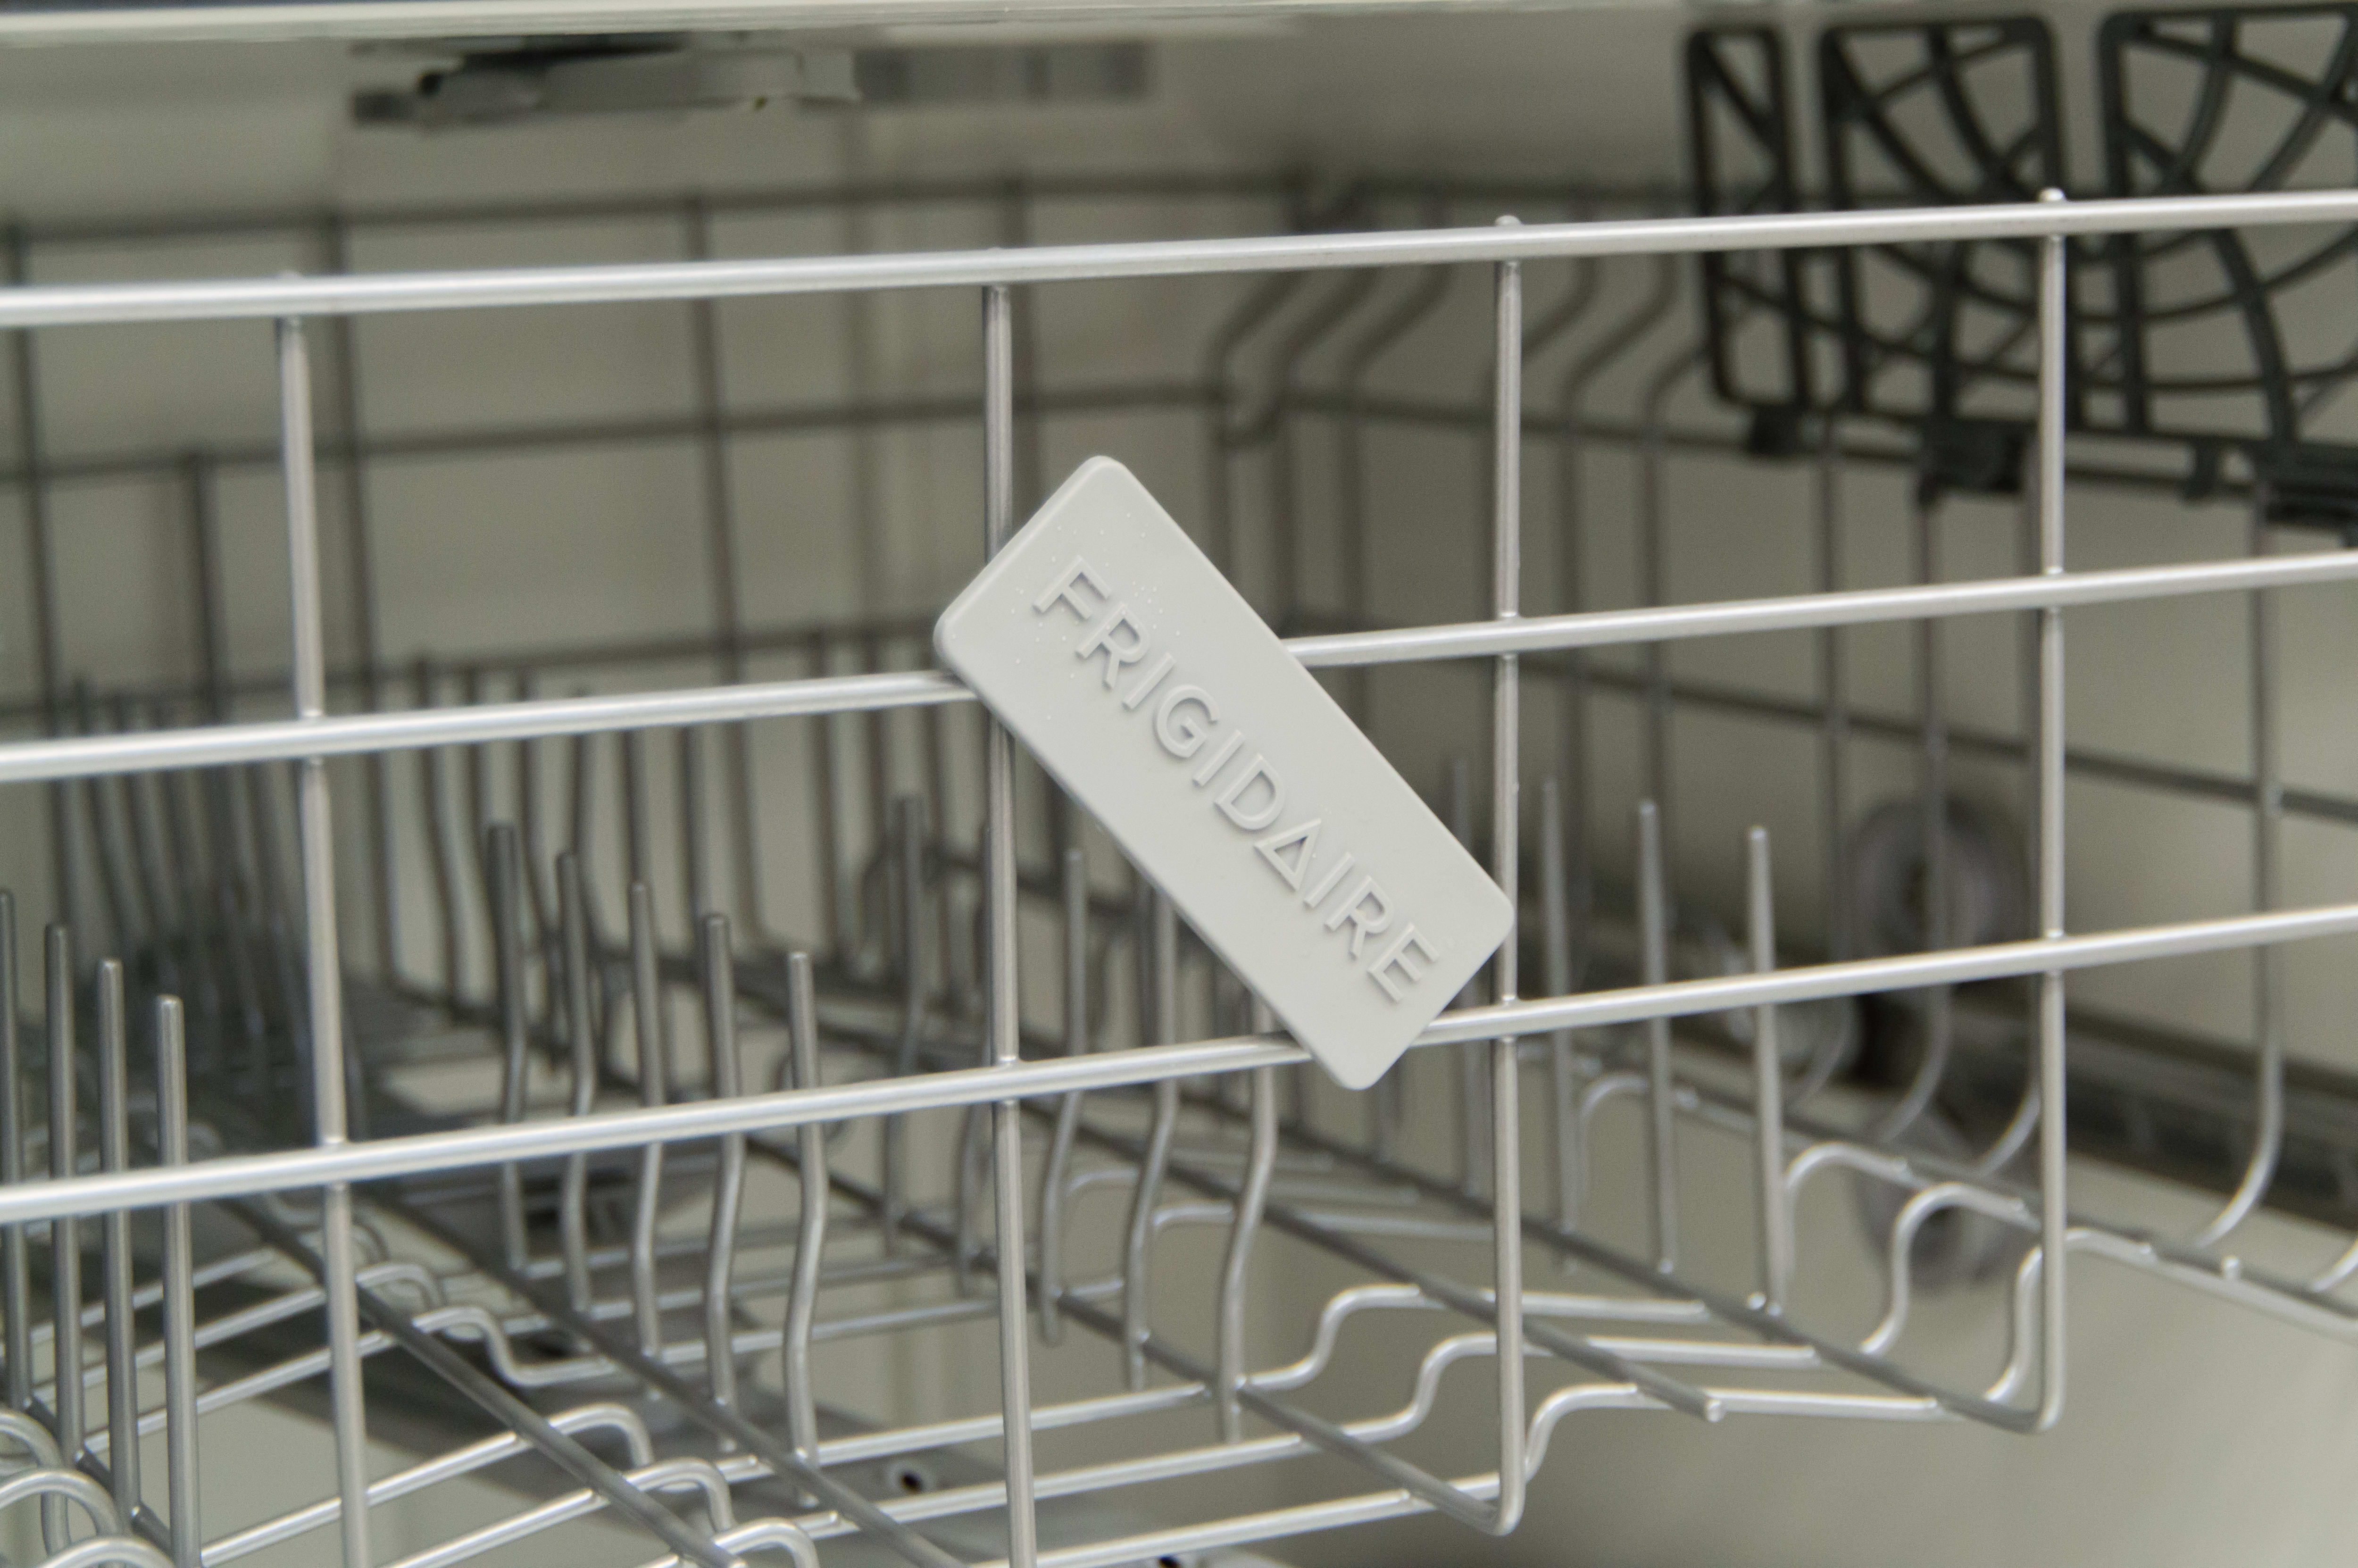 Unfortunately, the Frigidaire logo can sometimes hang down like this.